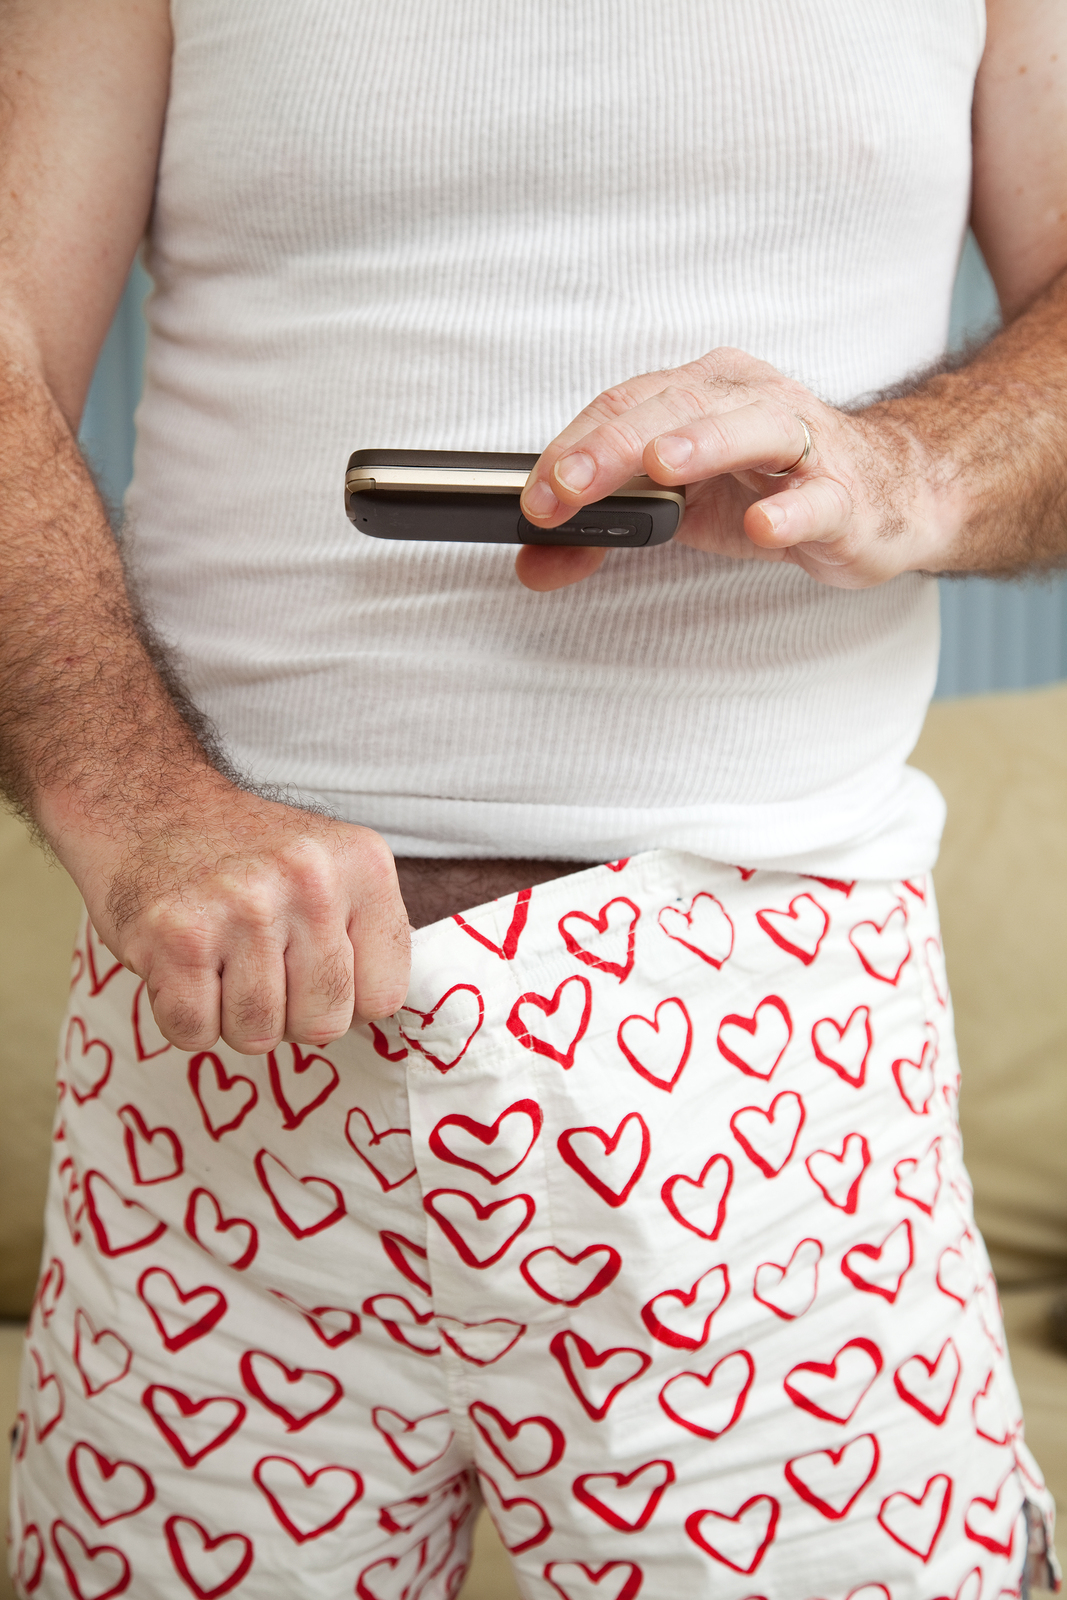 How to Keep Your Marriage Hot - sexting